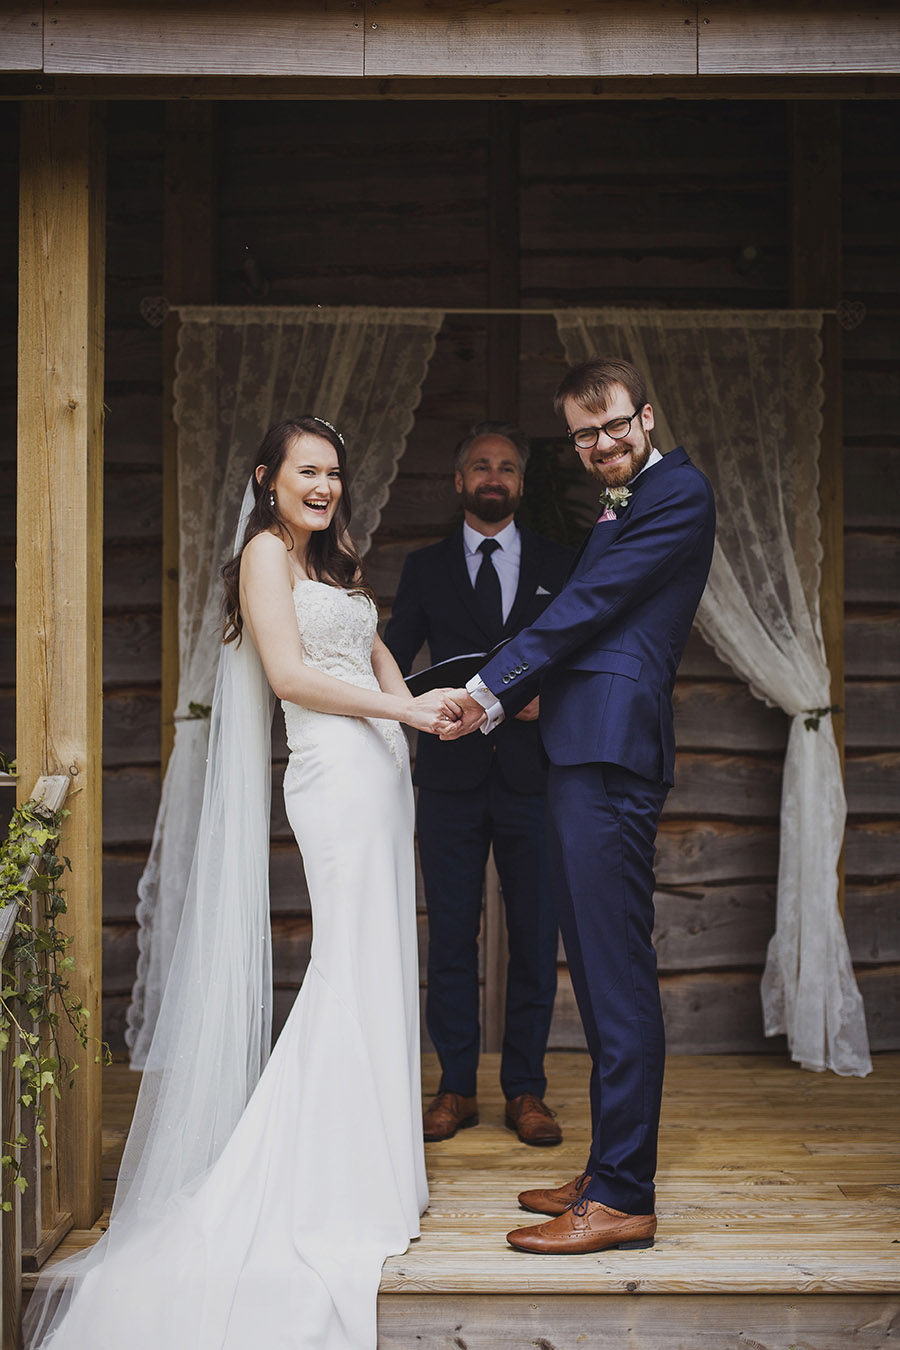 Relaxed outdoor wedding at Cott Farm Barn with images by Heather Birnie Photography on the English Wedding Blog (21)